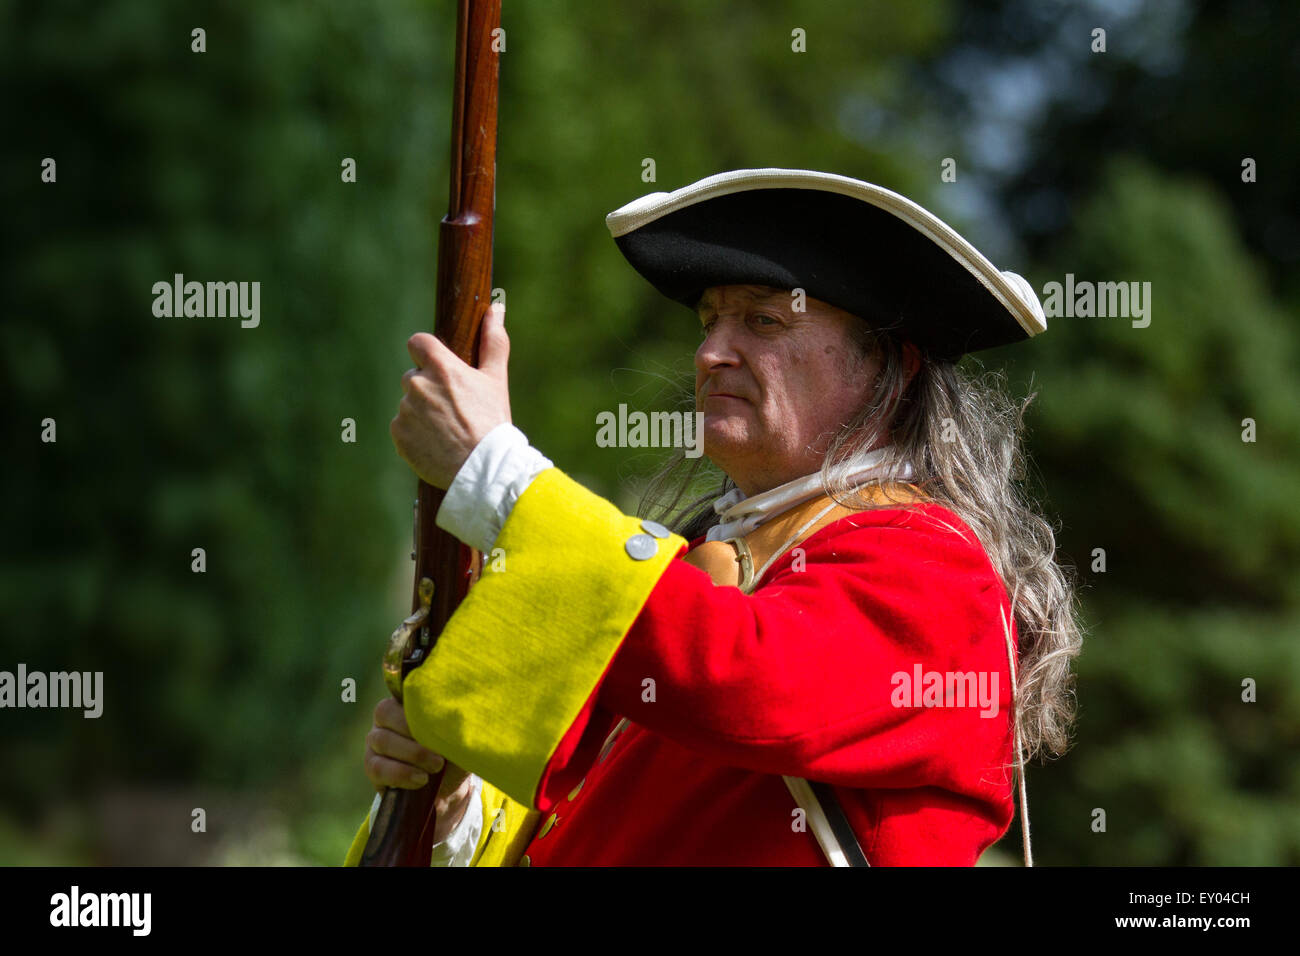 Musketeer at Hoghton, Preston,  Lancashire, UK. 18th July, 2015.   The Queen's Royal Regiment Living History Group' Stock Photo